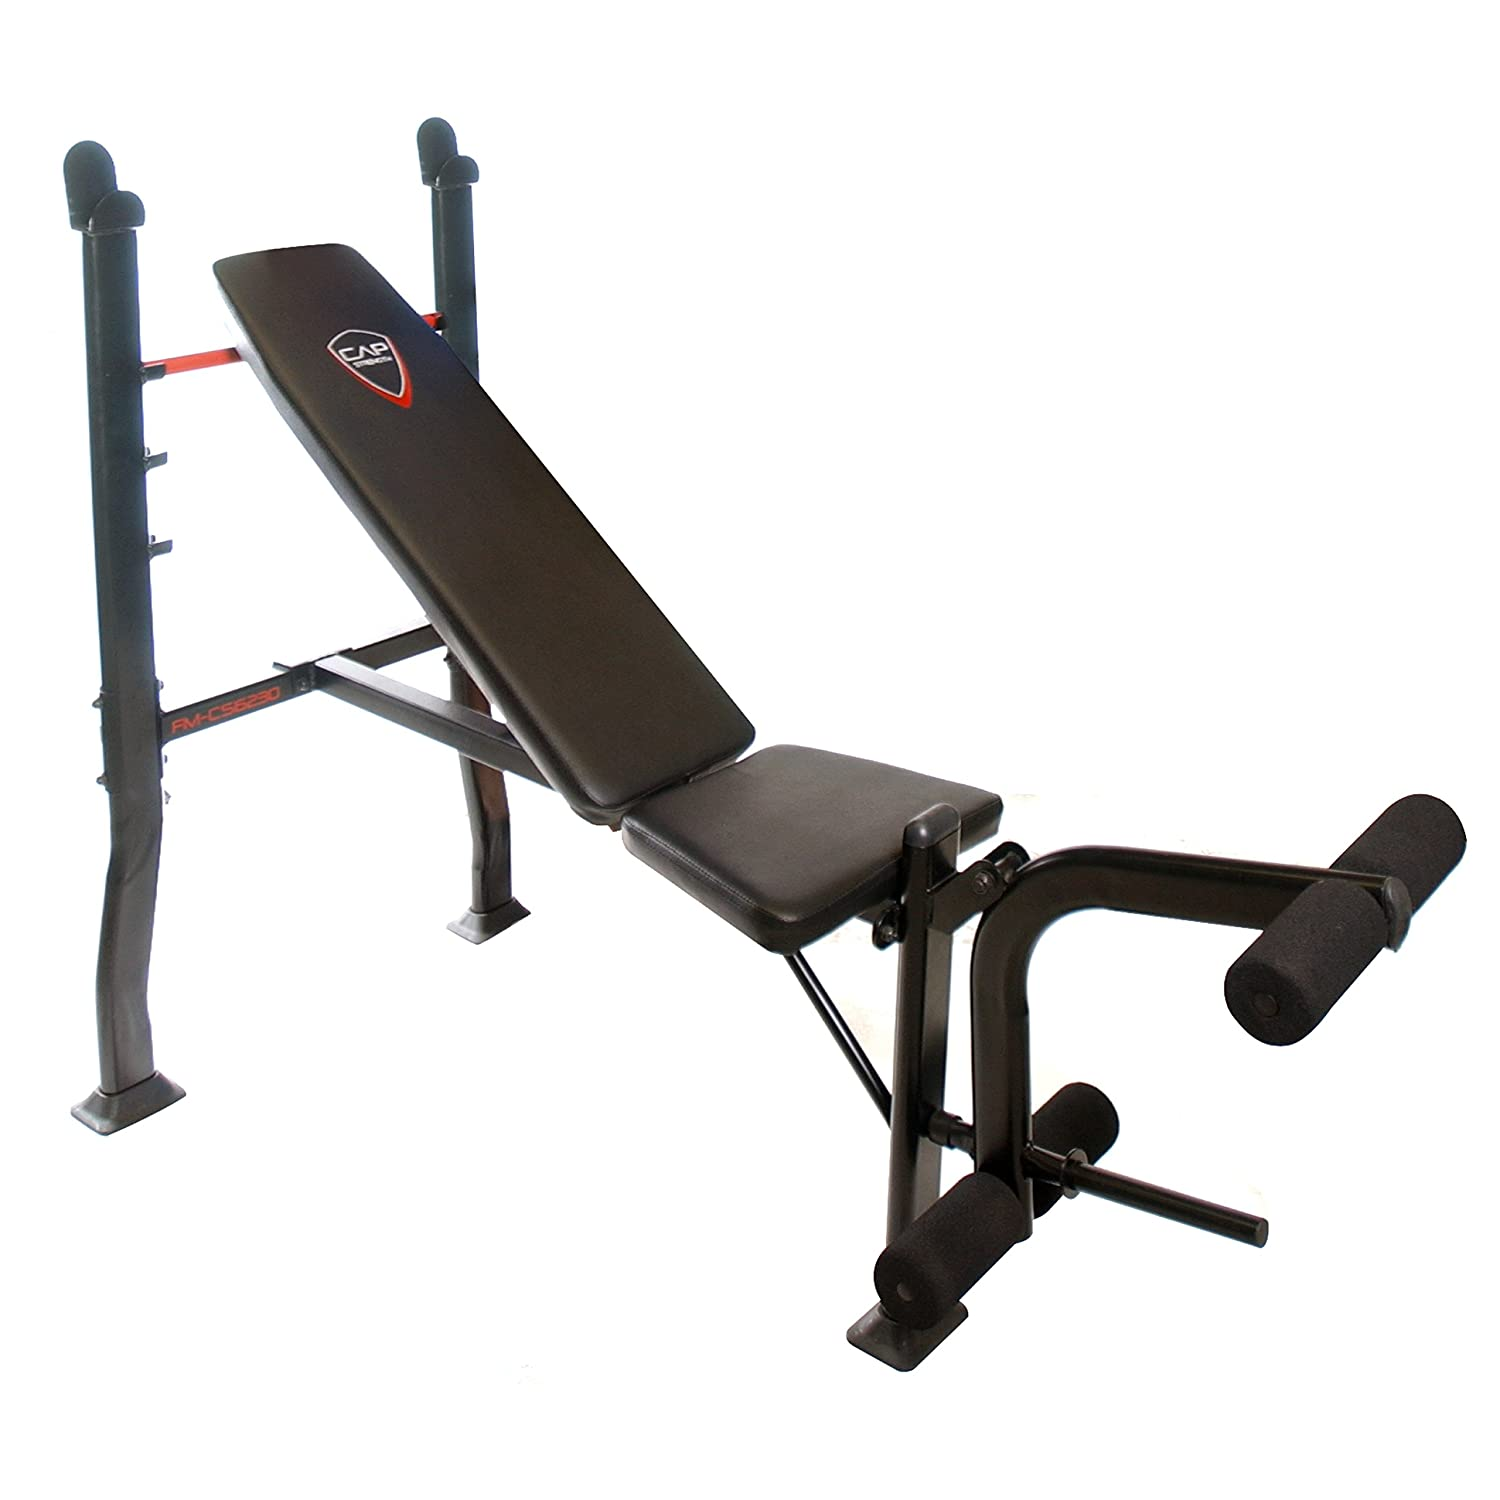 diamond uts set hover fingerhut bench over to va for product marcy zoom click image scl lifting weight full